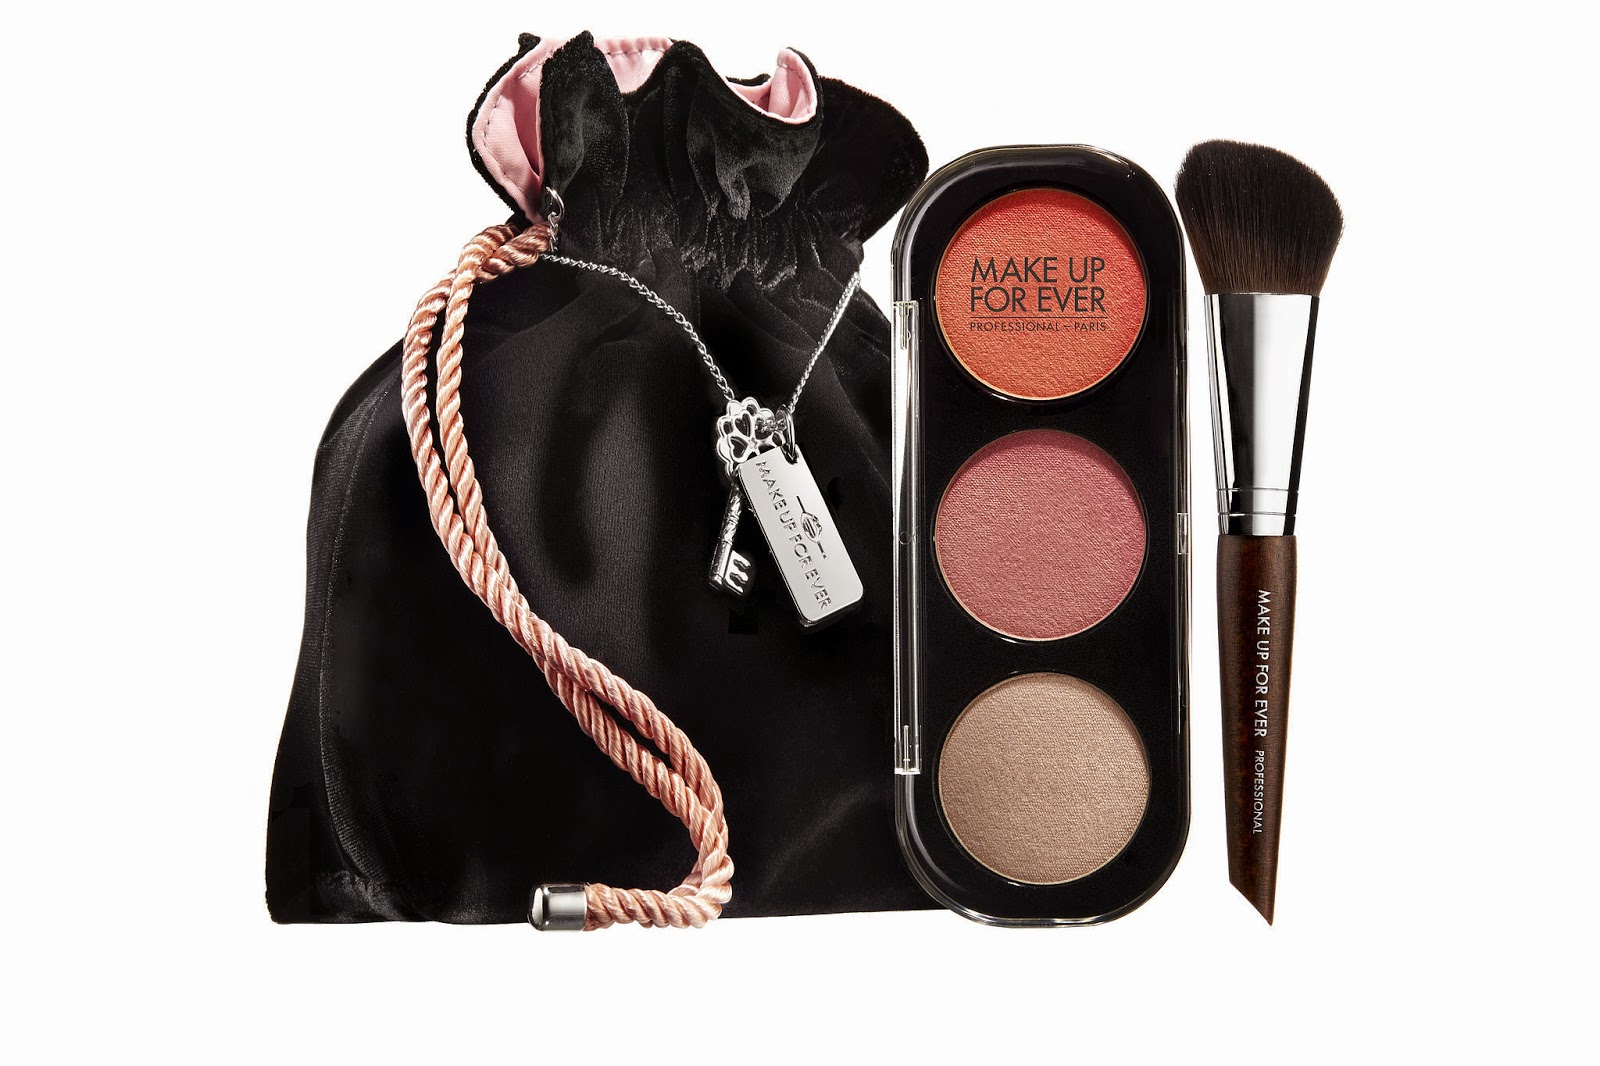 Make Up For Ever, Fifty Shades of Grey Collection, Desire Me Blush Trio